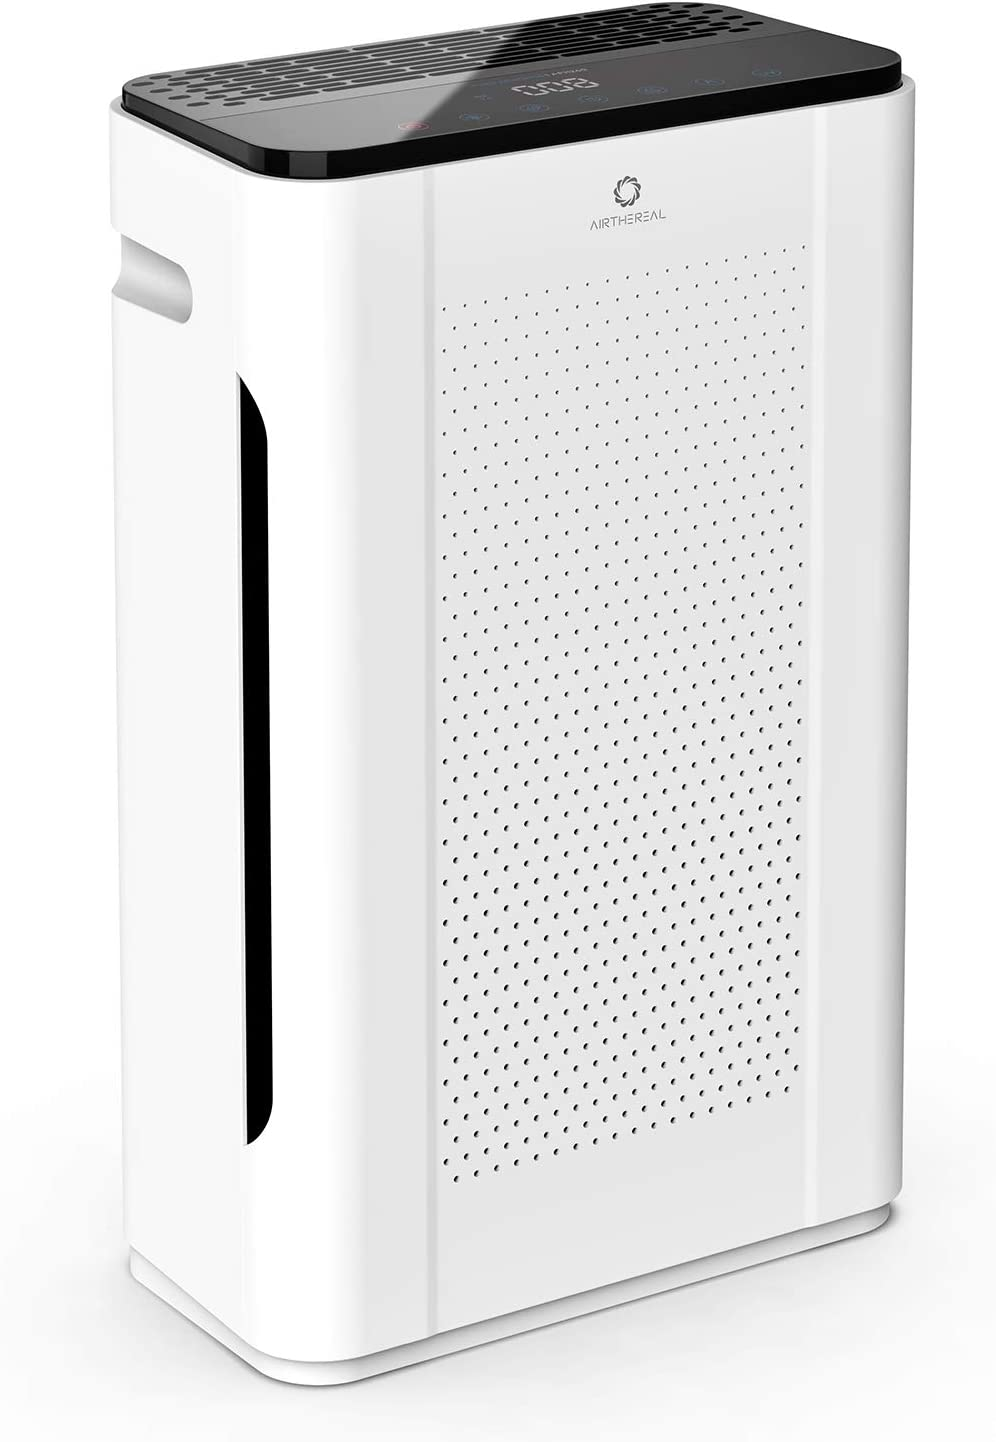 Airthereal APH260 Air Purifier for Home Large Room and Office with 3 Filtration Stage True HEPA Filter - Removes Allergies, Dust, Smoke, Odors, and More - CARB ETL Certified, 152 CFM, Pure Morning